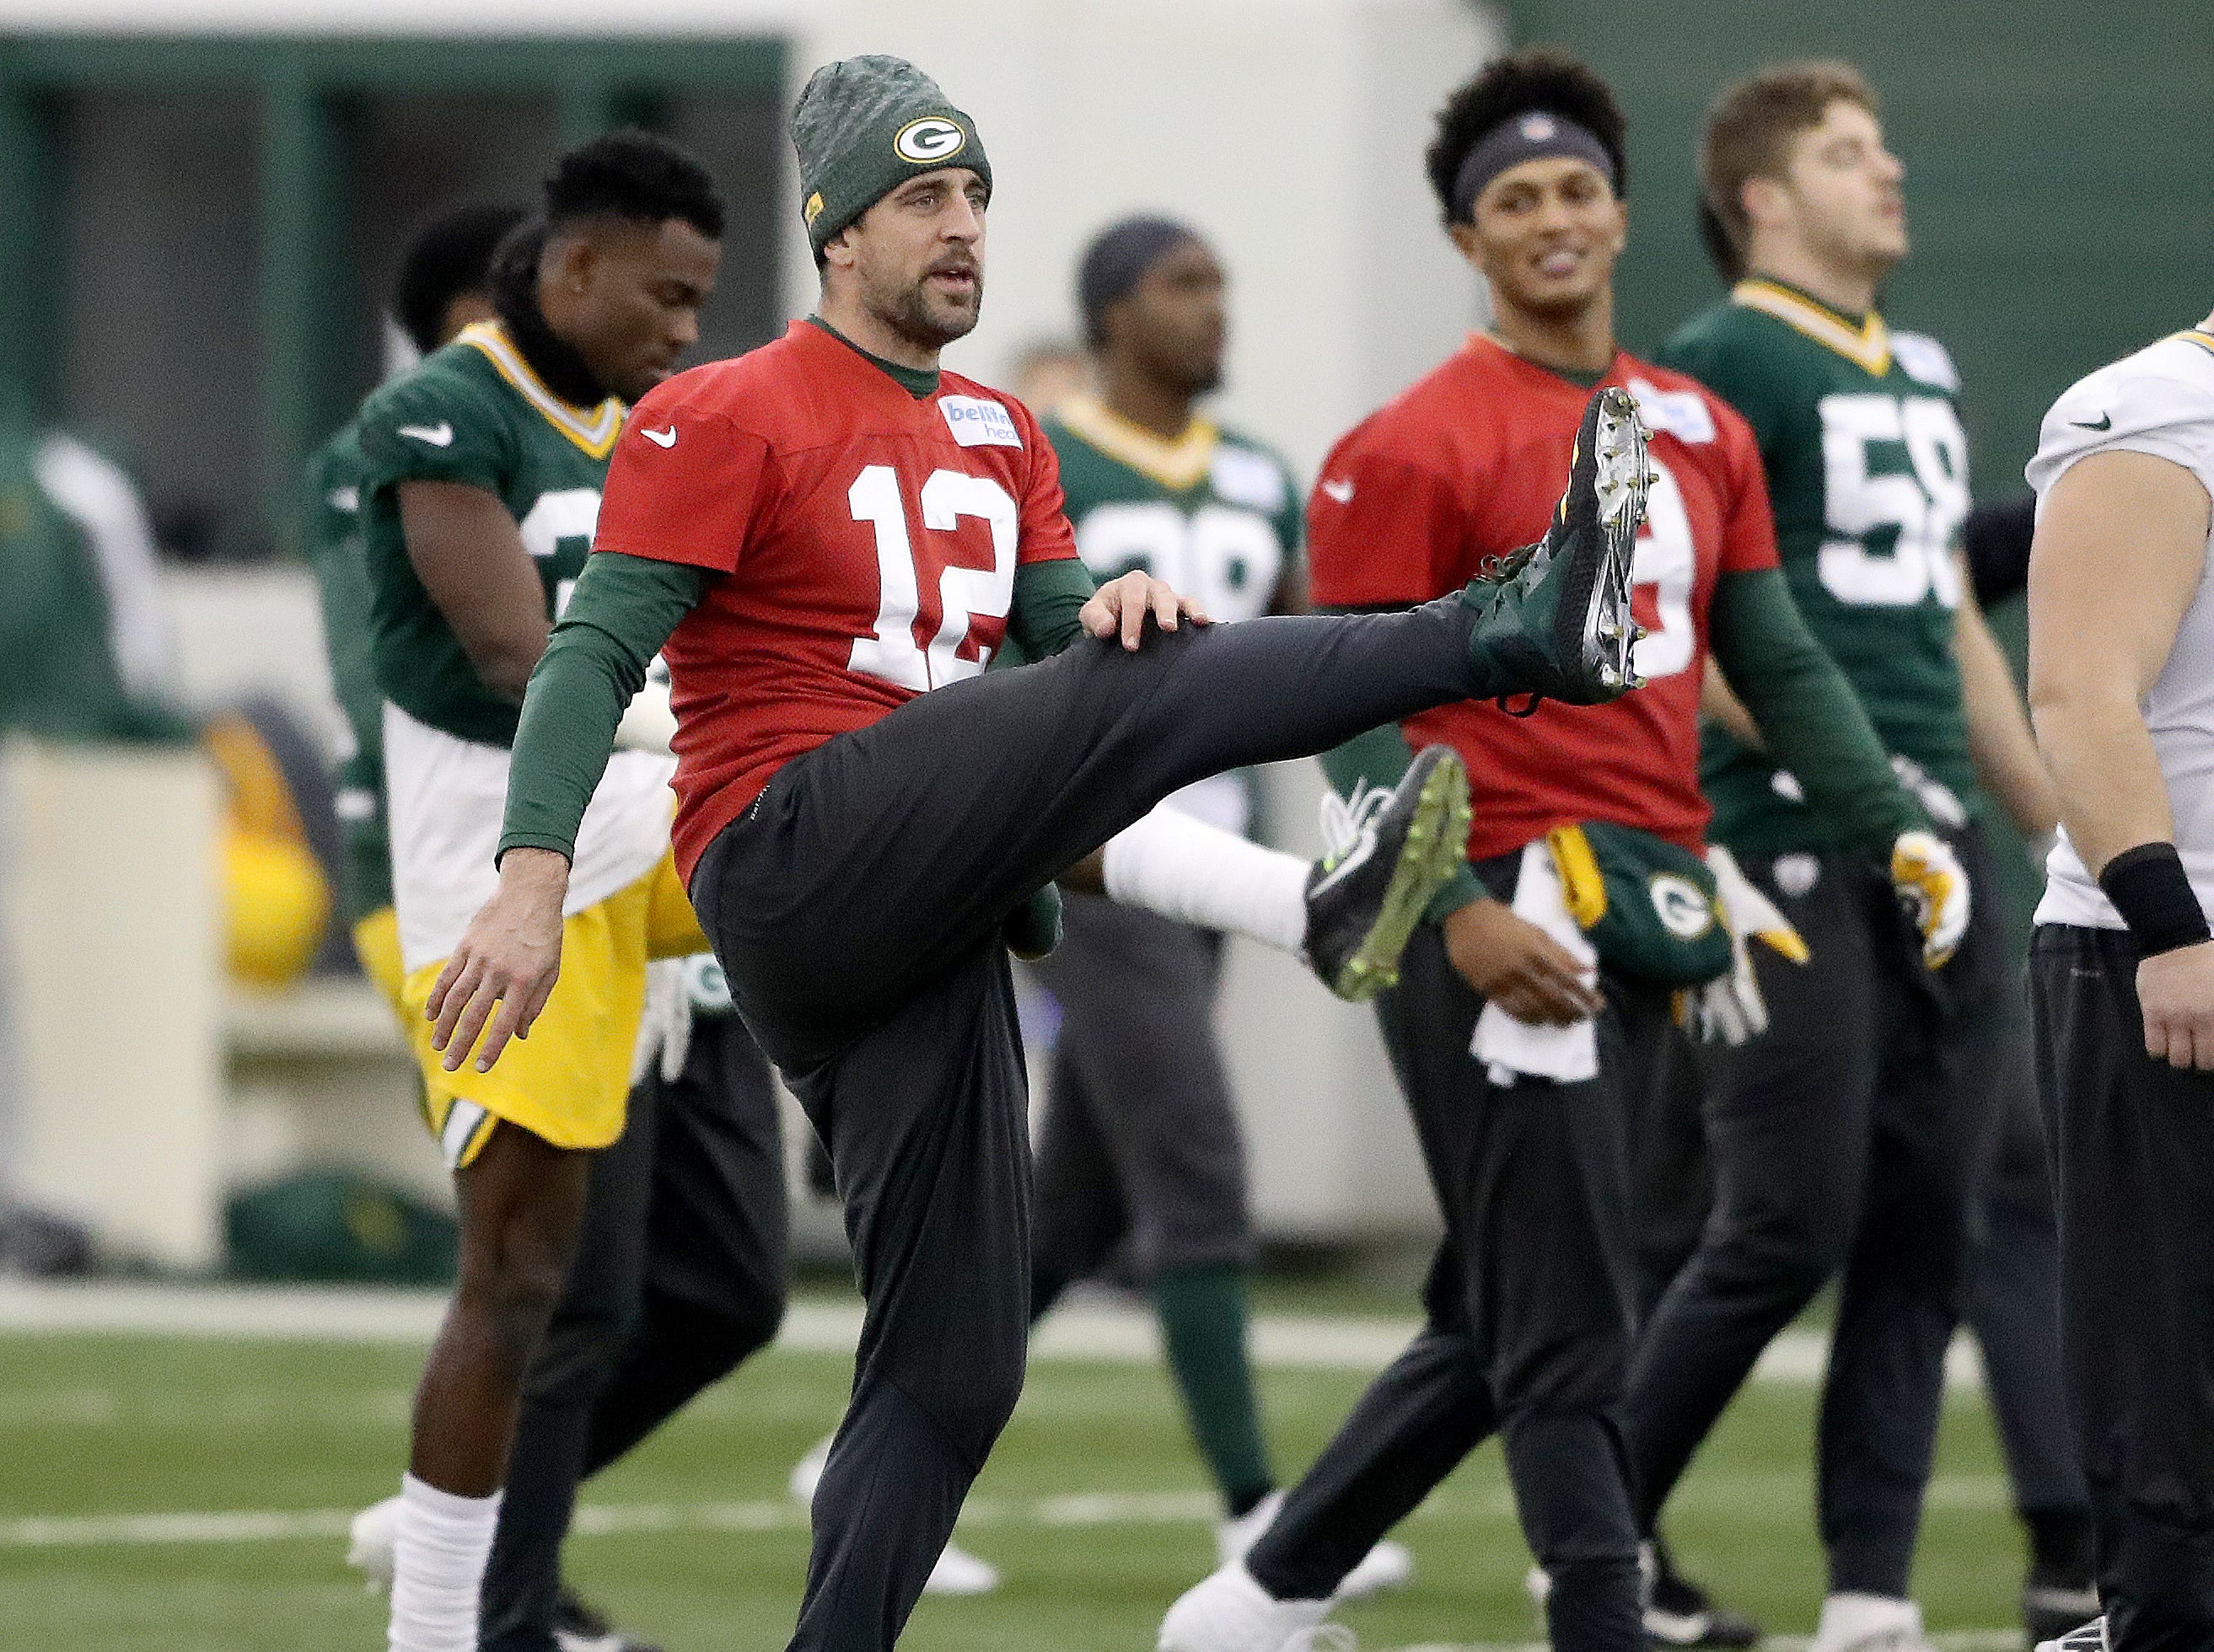 Green Bay Packers quarterback Aaron Rodgers (12) warms up during practice Wednesday, December 12, 2018 in the Don Hutson Center in Ashwaubenon, Wis.